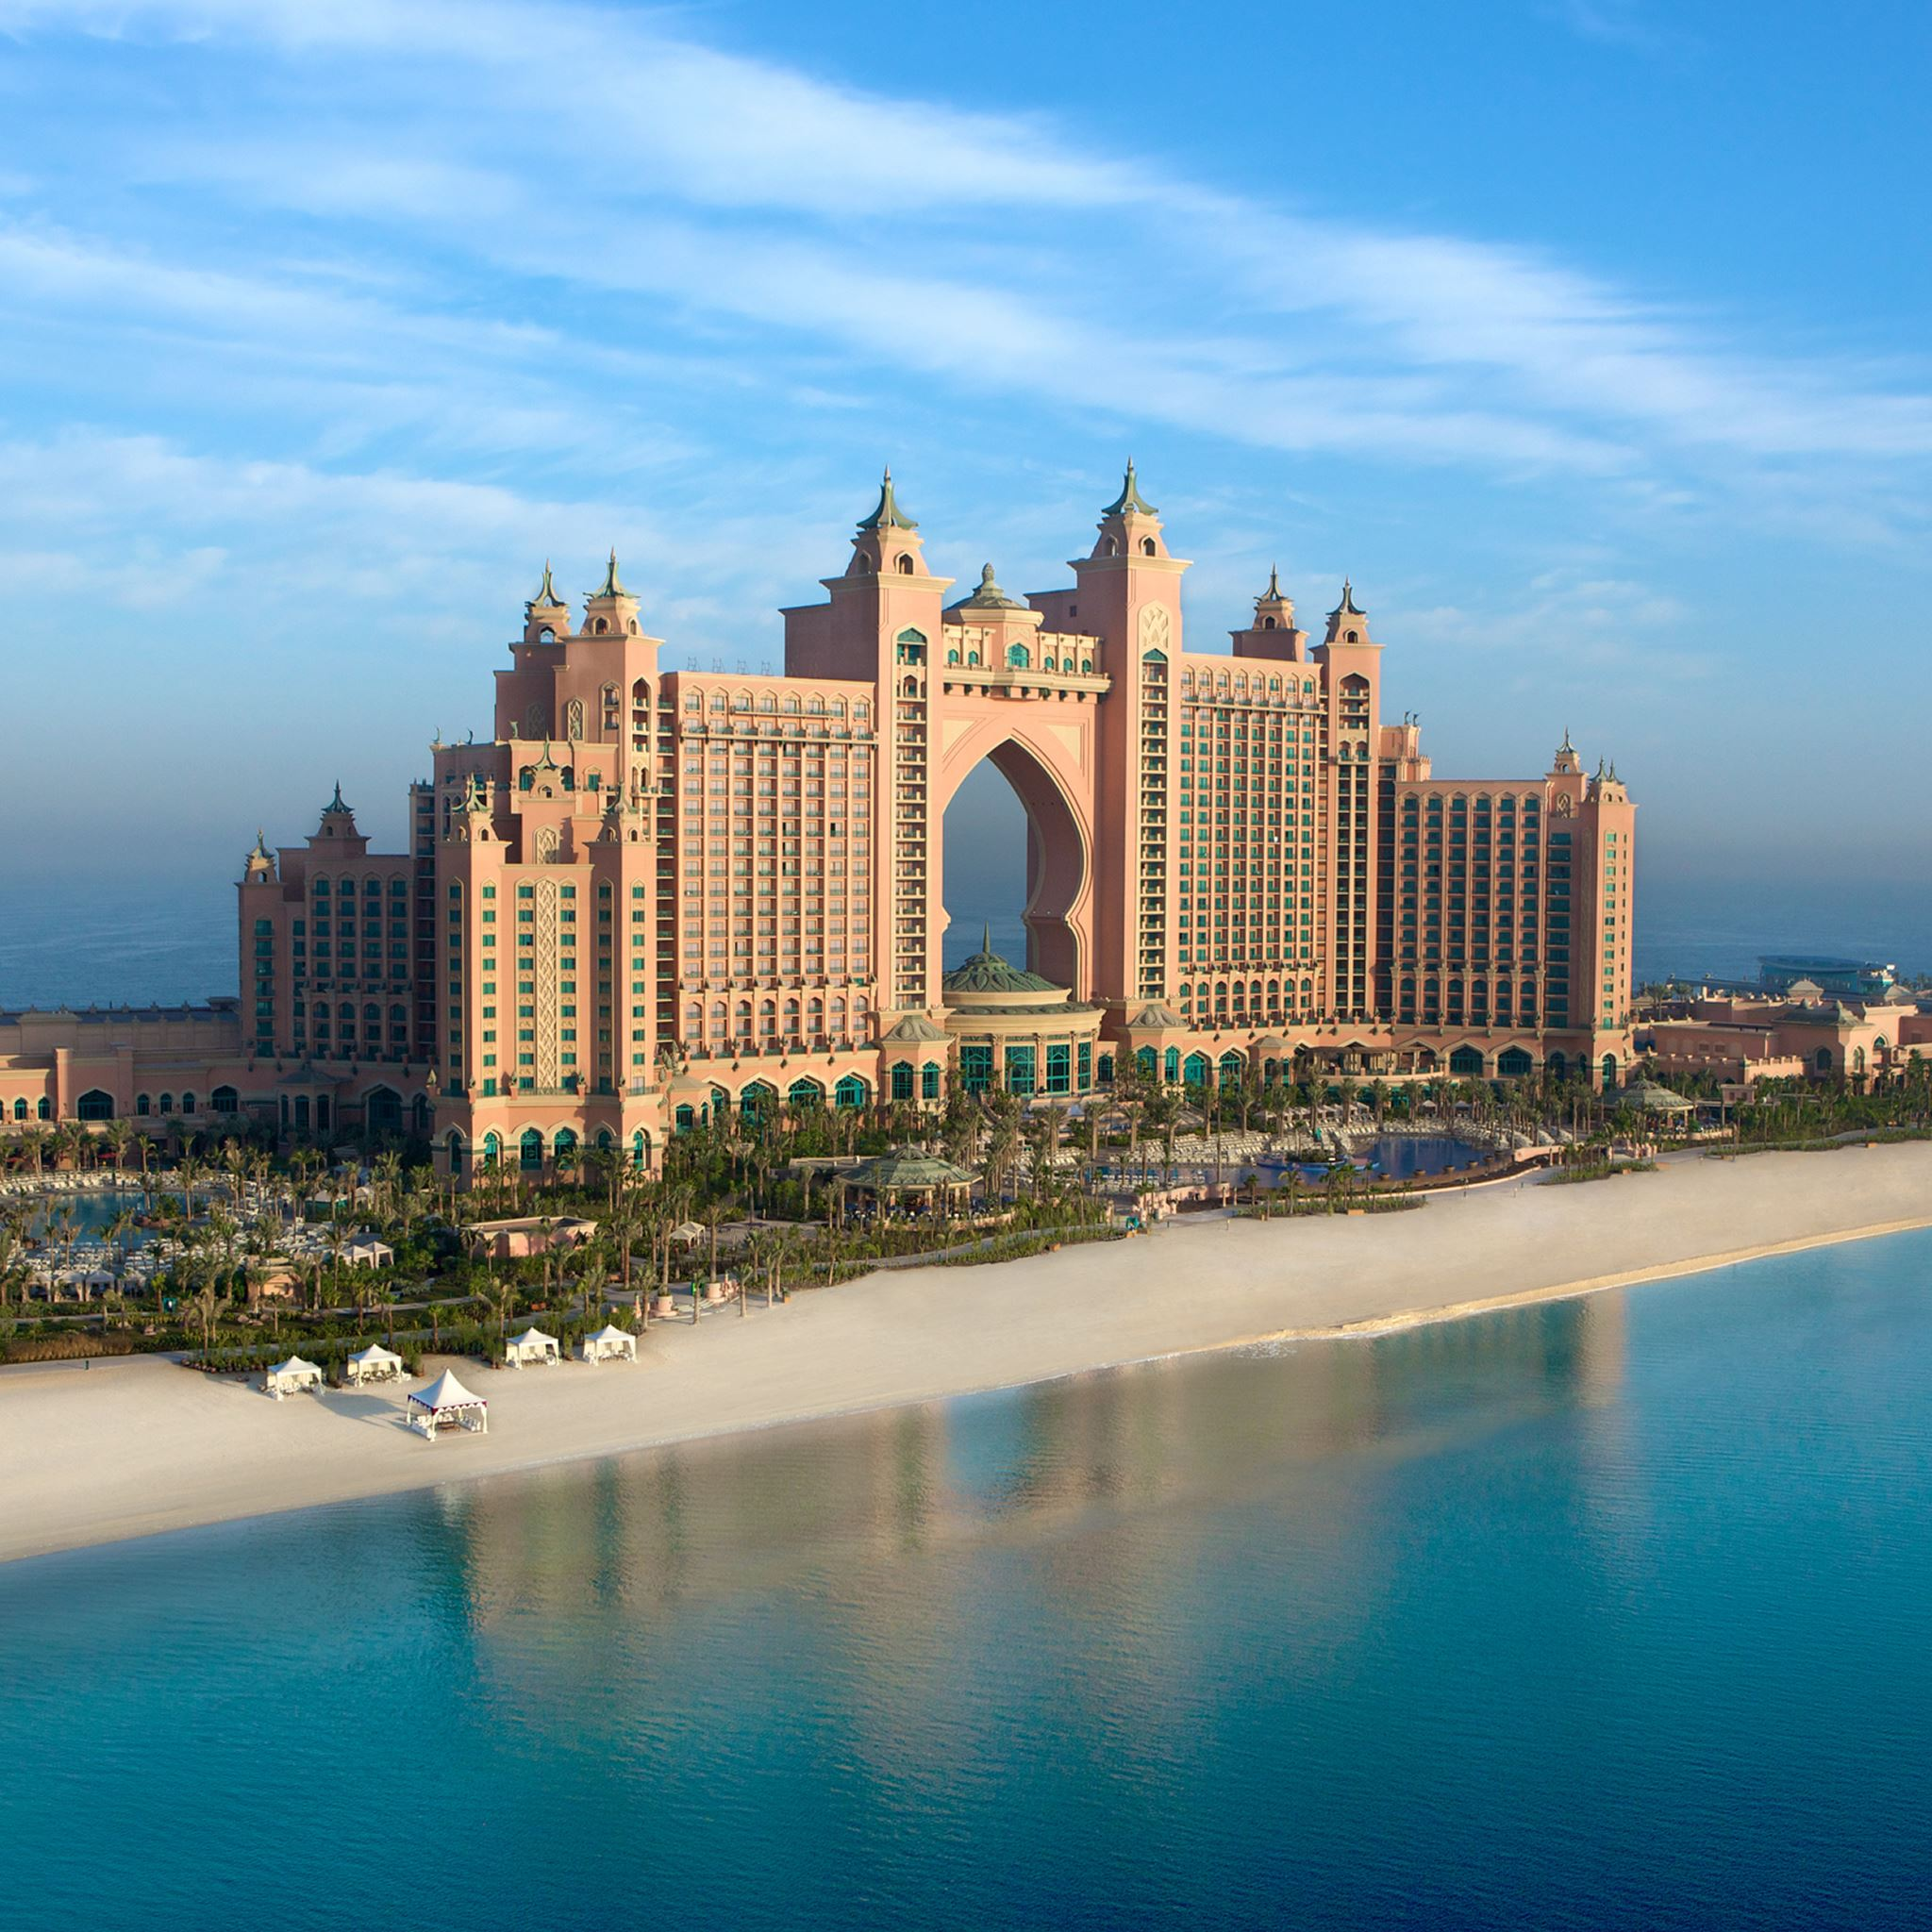 Atlantis the Palm in Dubai iPad Air wallpaper